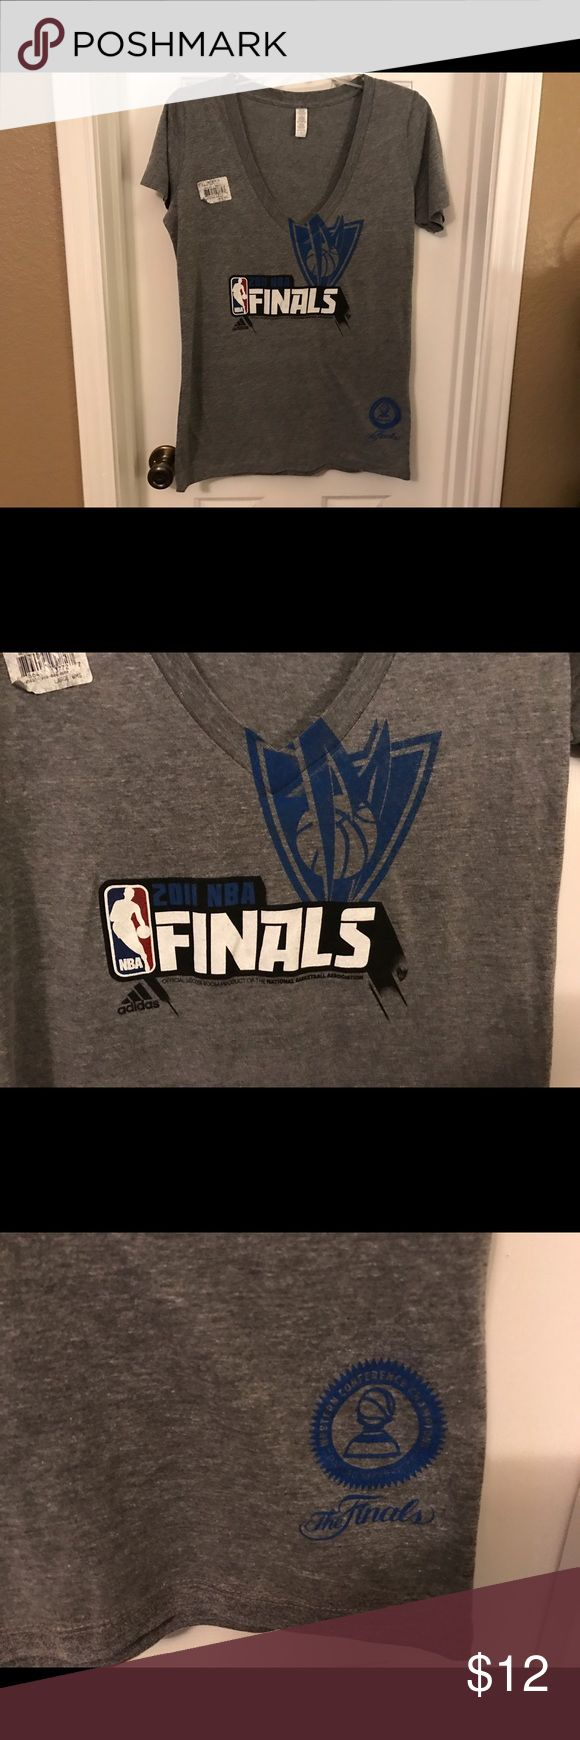 Adidas Dallas 2011 NBA Finals Ladies T-Shirt NWT Adidas Dallas Mavericks 2011 NBA Finals Ladies V-Neck T-Shirt. It is new with the store tags but not the manufacturer tags. Color is medium gray. Smoke-free home. adidas Tops Tees - Short Sleeve